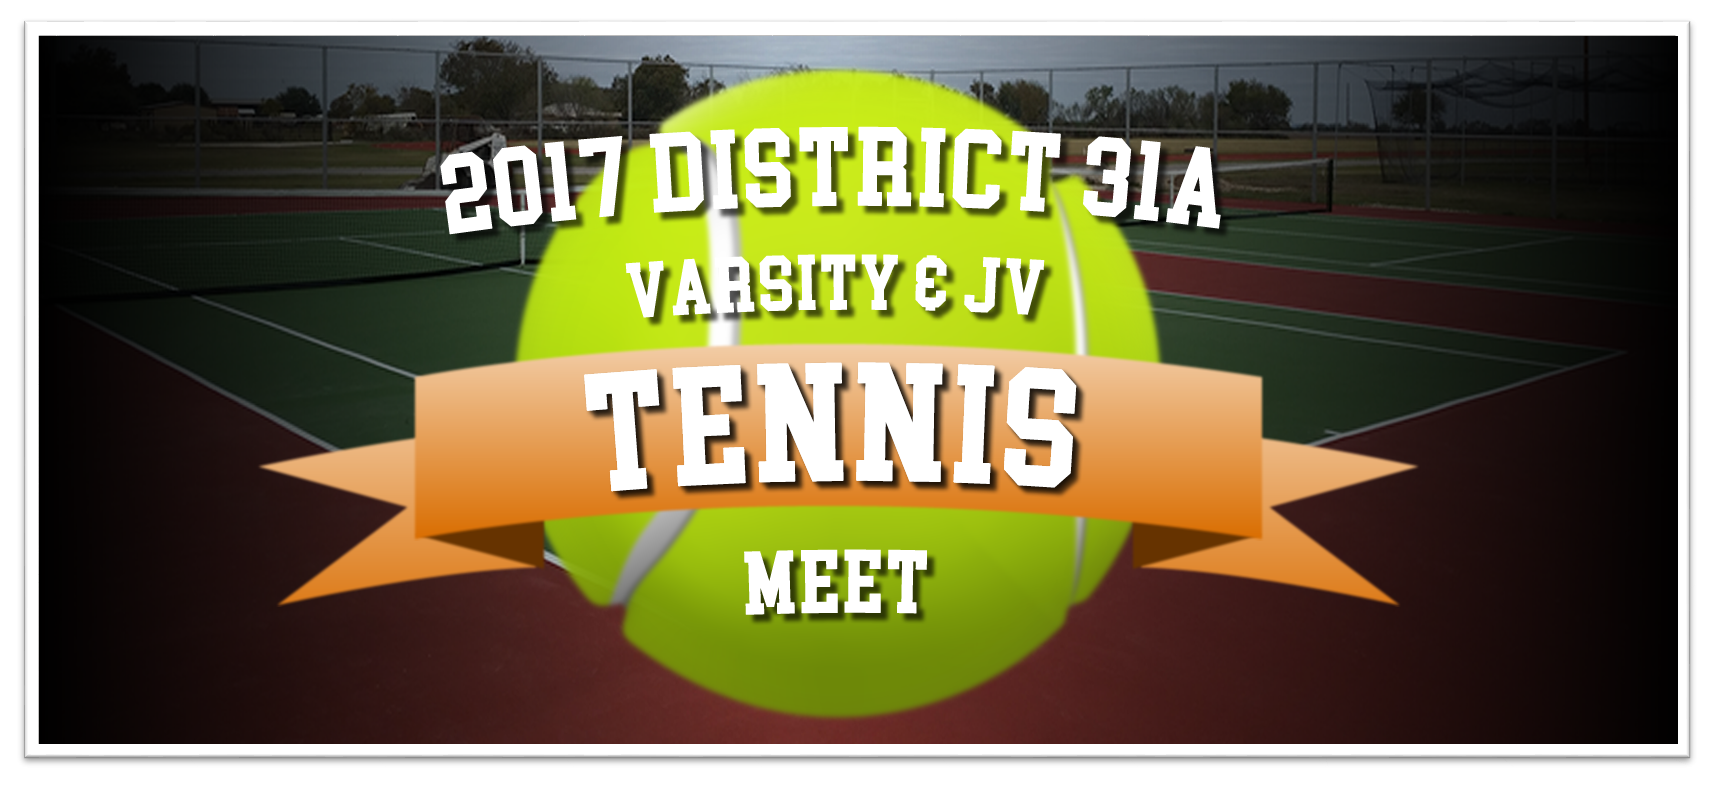 Knippa Tennis Team Dominated The 2017 District 31 A Meet Knippa Isd High School